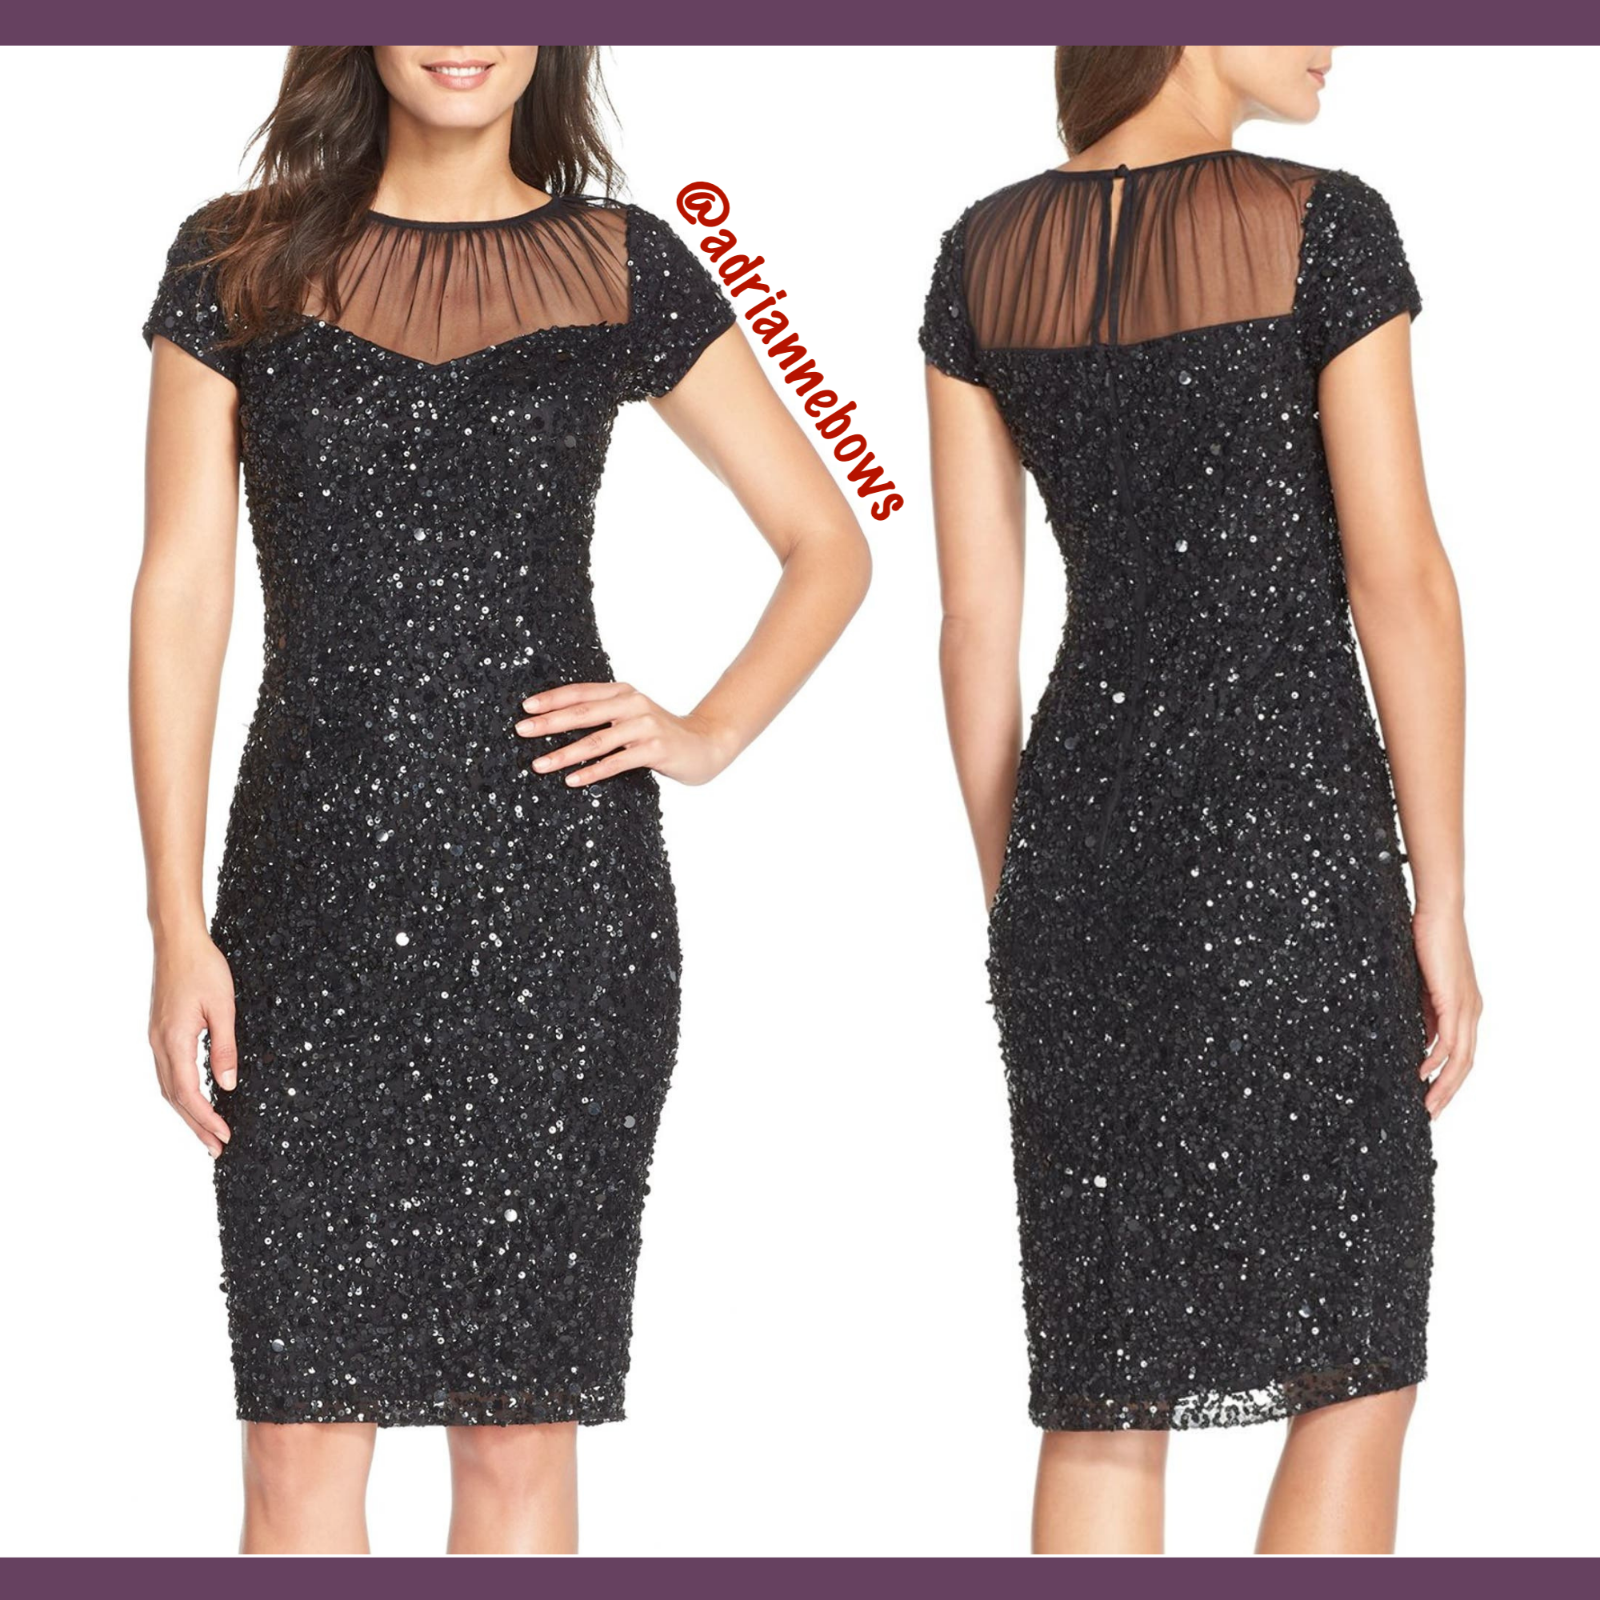 NEW Adrianna Papell Sequin Embellished Sheath Dress in Black [SZ 4 ] #N174